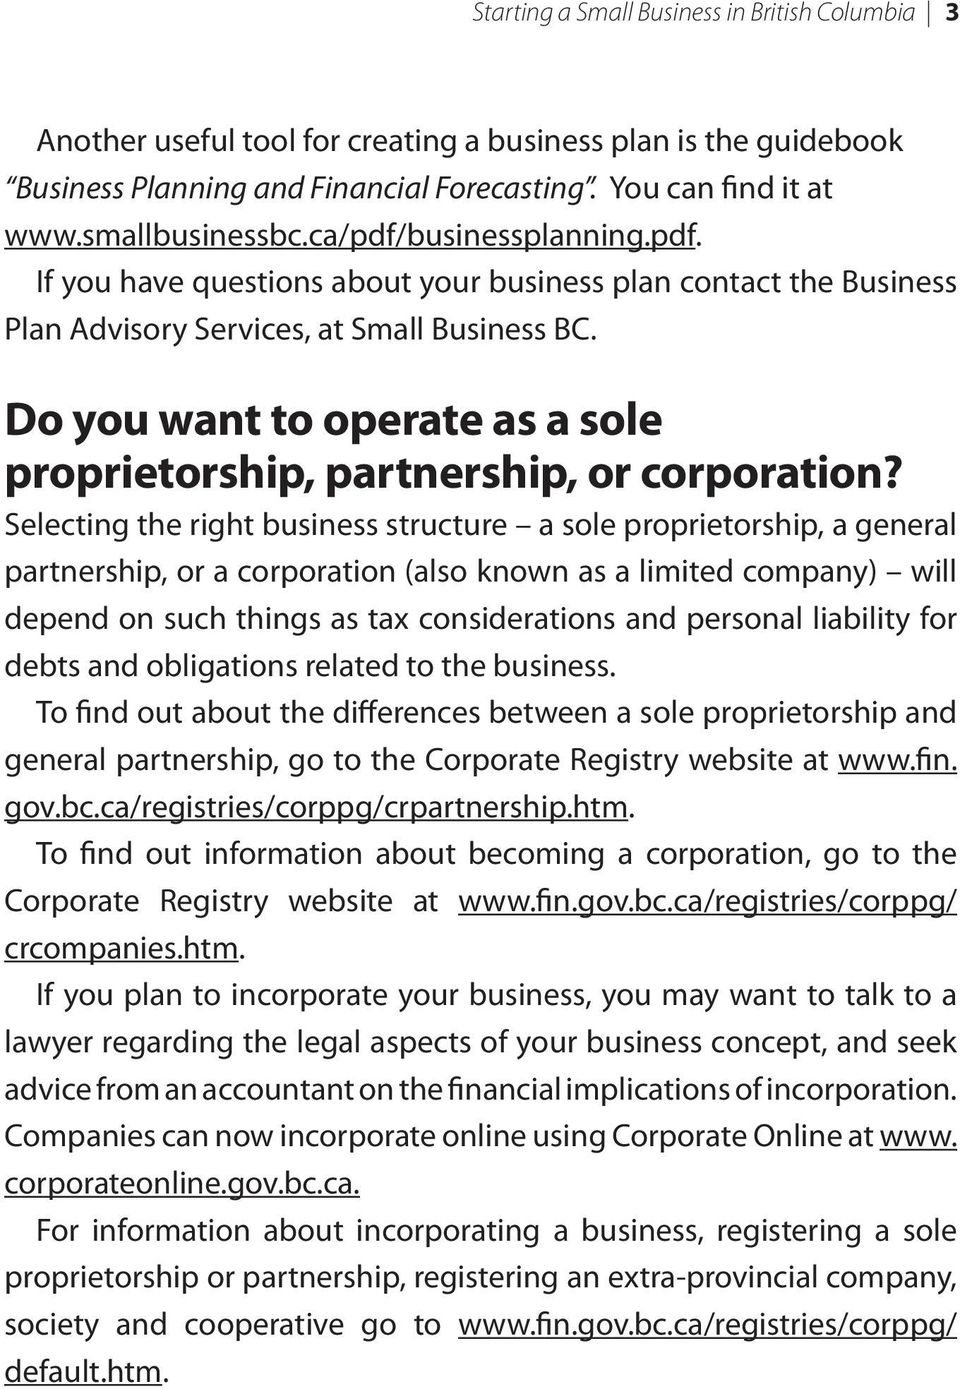 Do you want to operate as a sole proprietorship, partnership, or corporation?